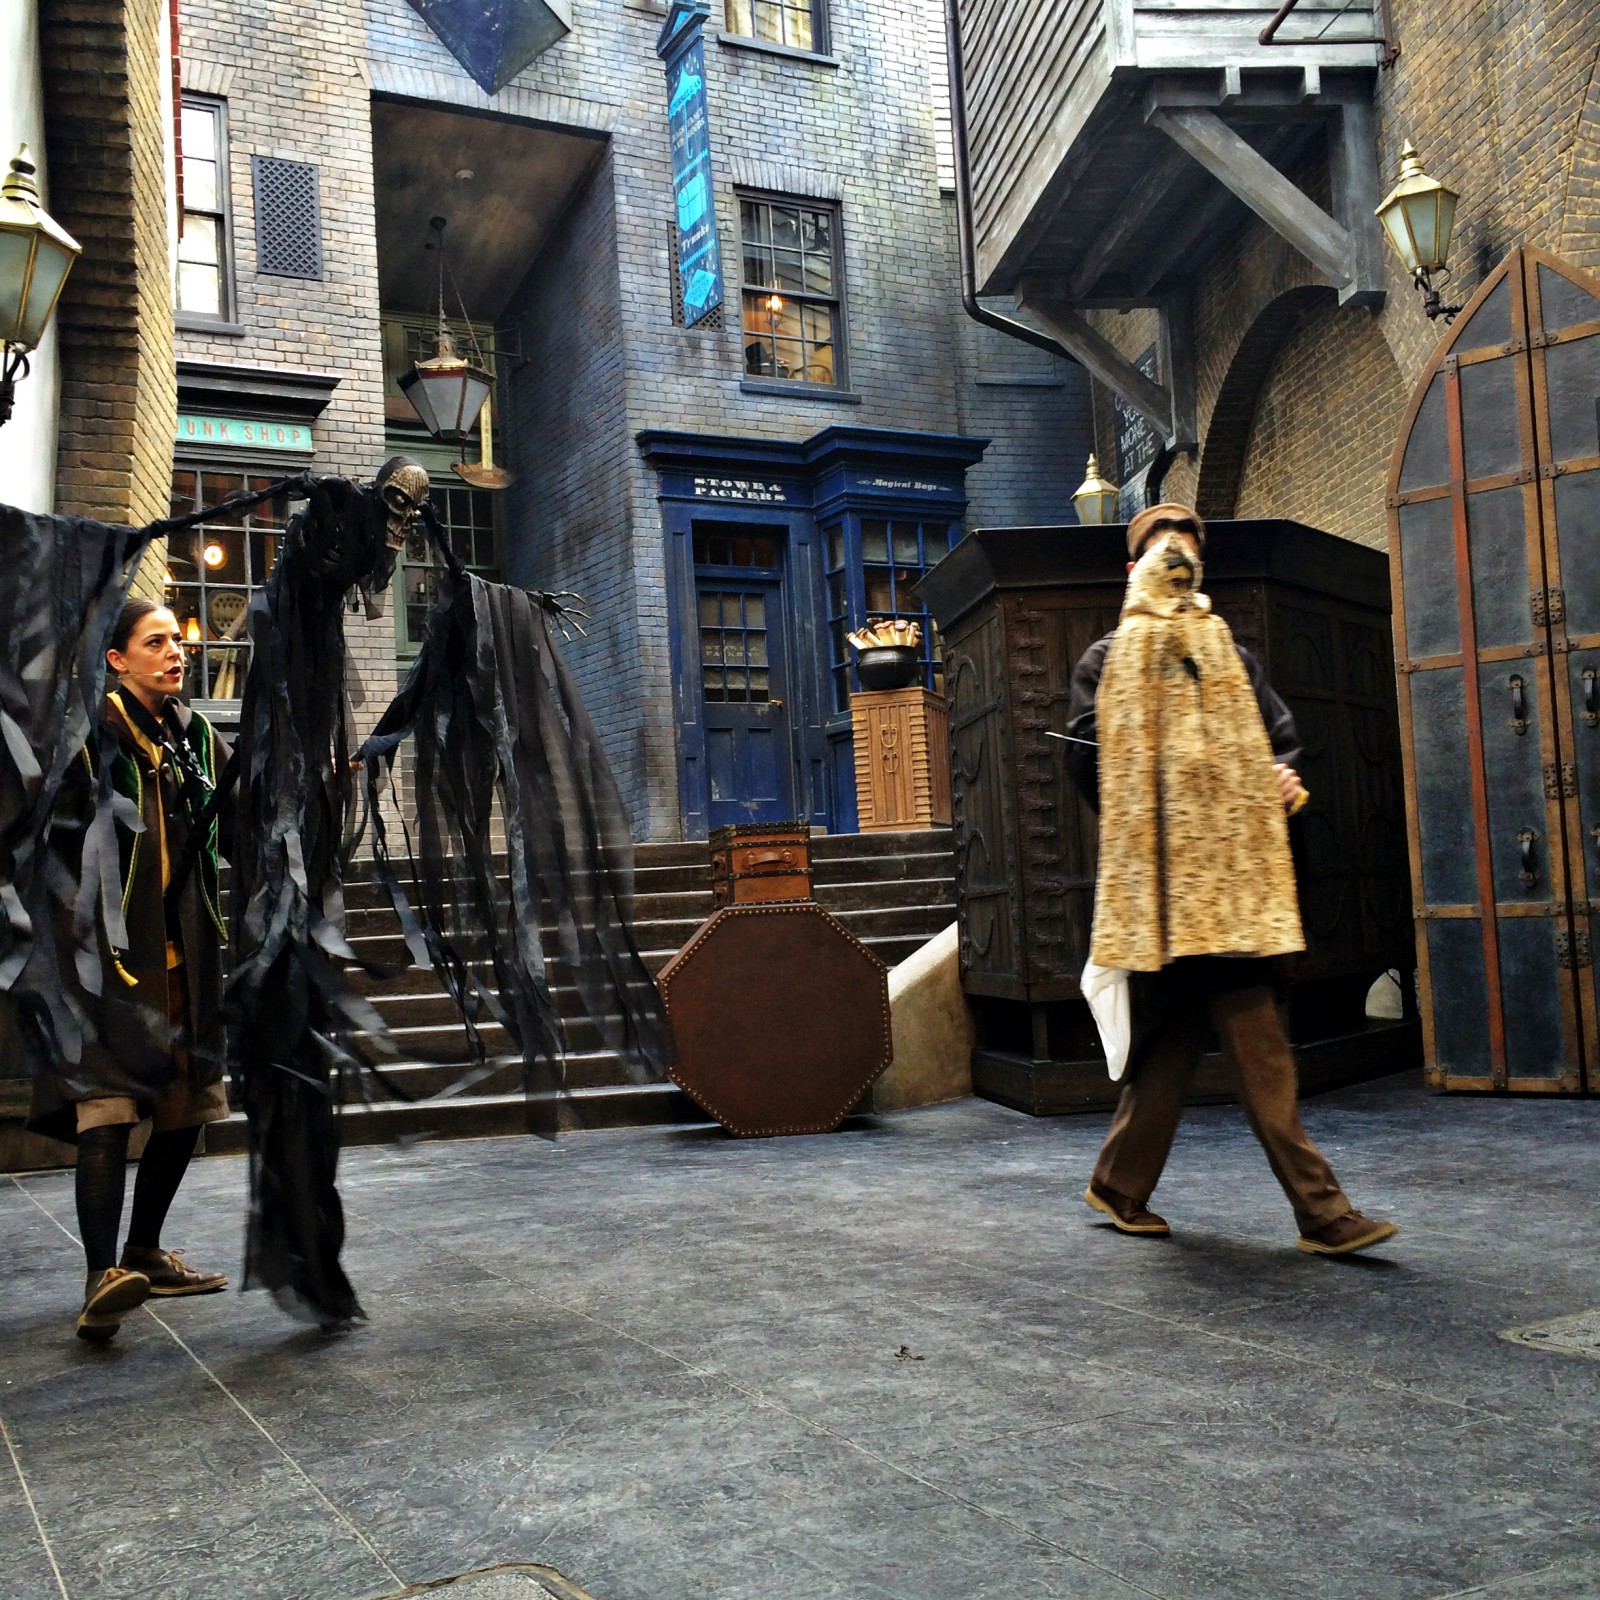 Diagon Alley The Tale of the Three Brothers